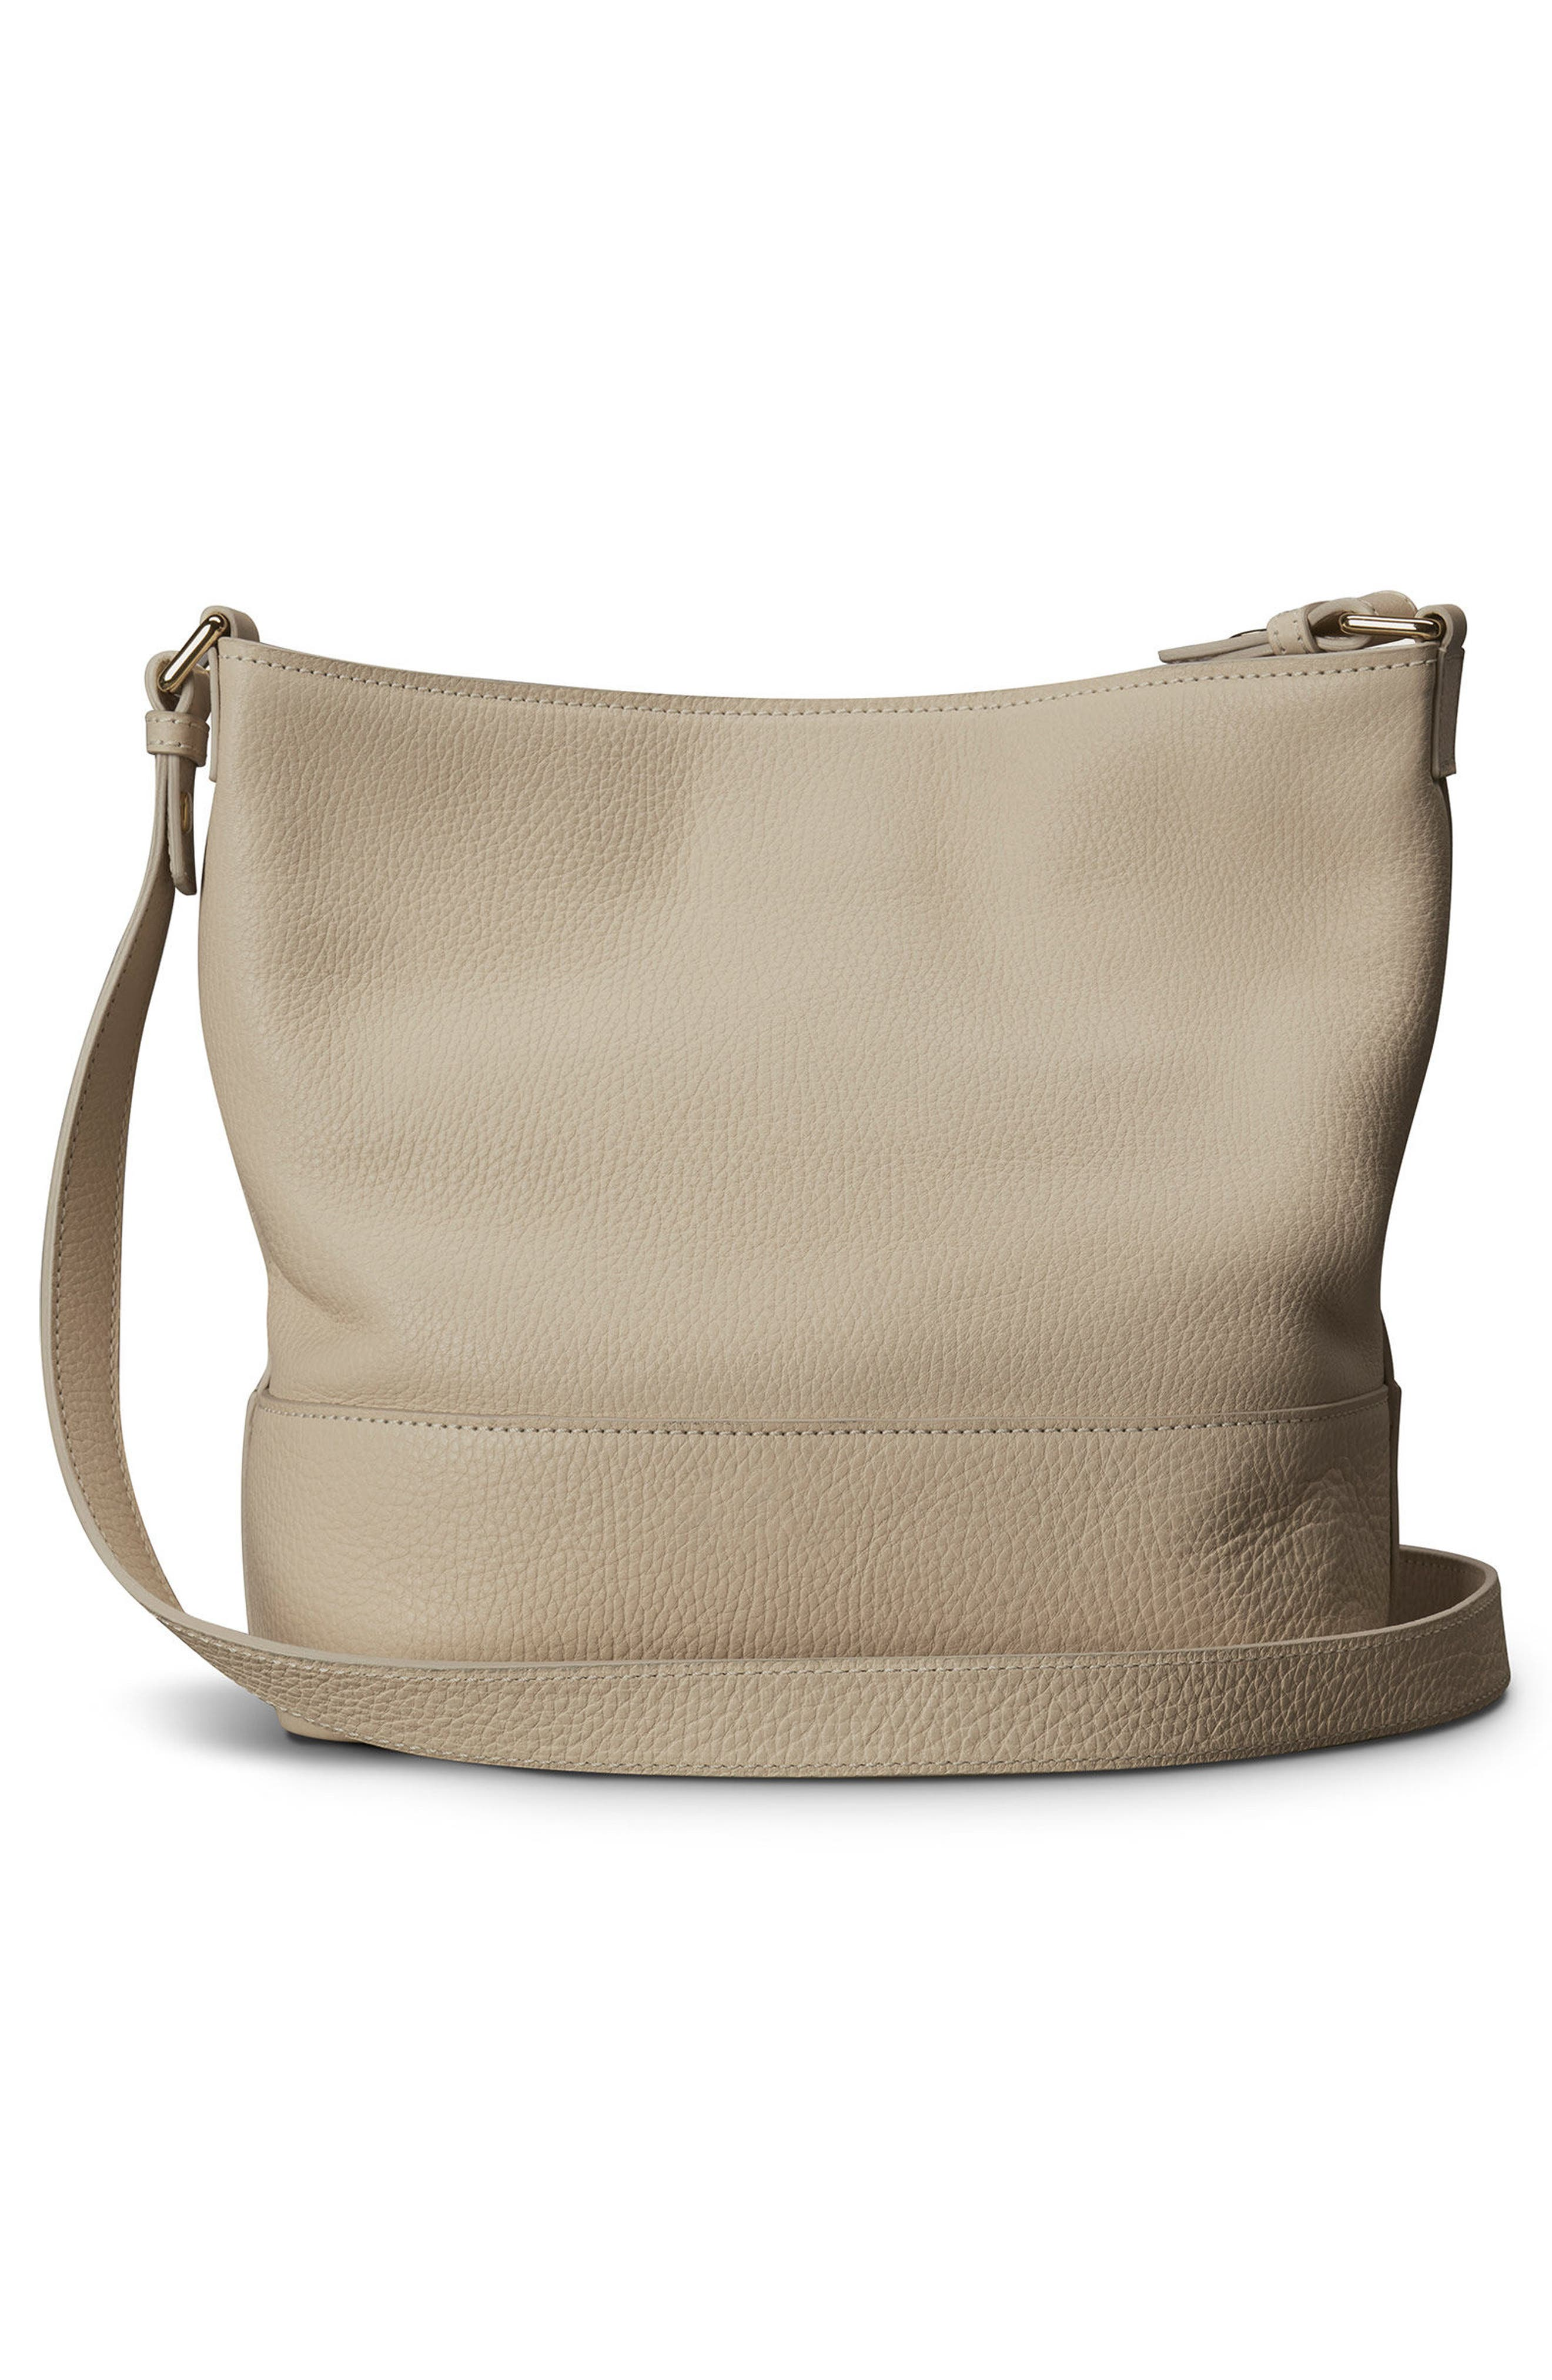 Small Relaxed Leather Hobo Bag,                             Alternate thumbnail 2, color,                             Stone